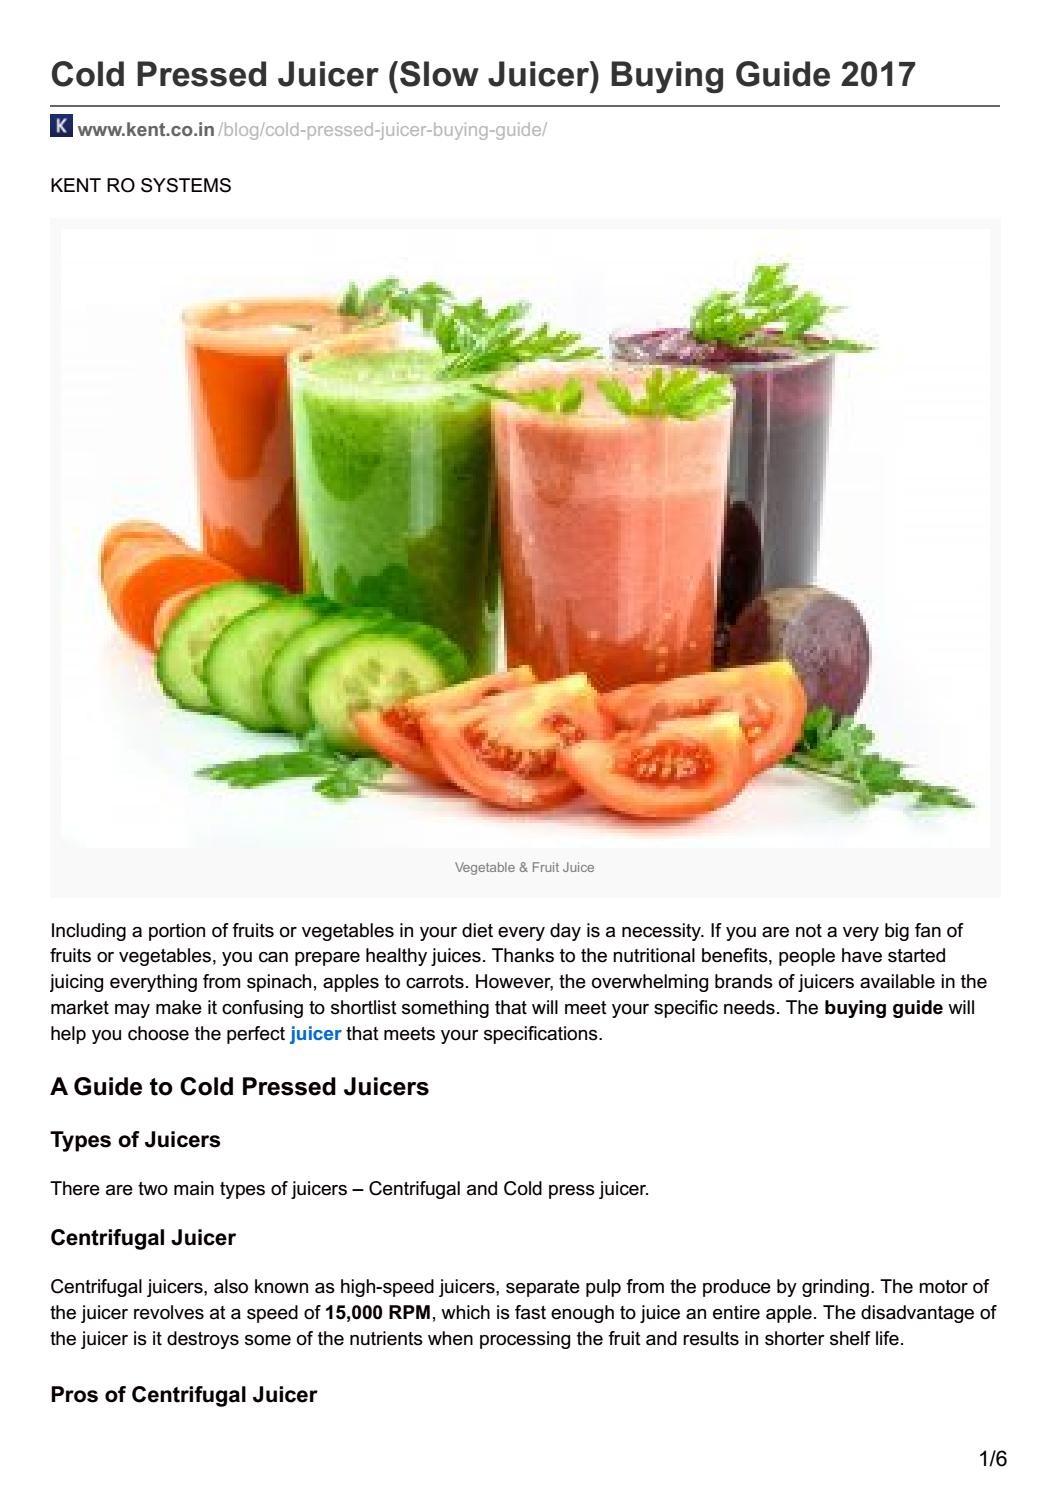 Slow Juicer Spinach : KENT Cold Pressed Juicer Slow Juicer Buying Guide 2017 by Anoop Srivastava - issuu